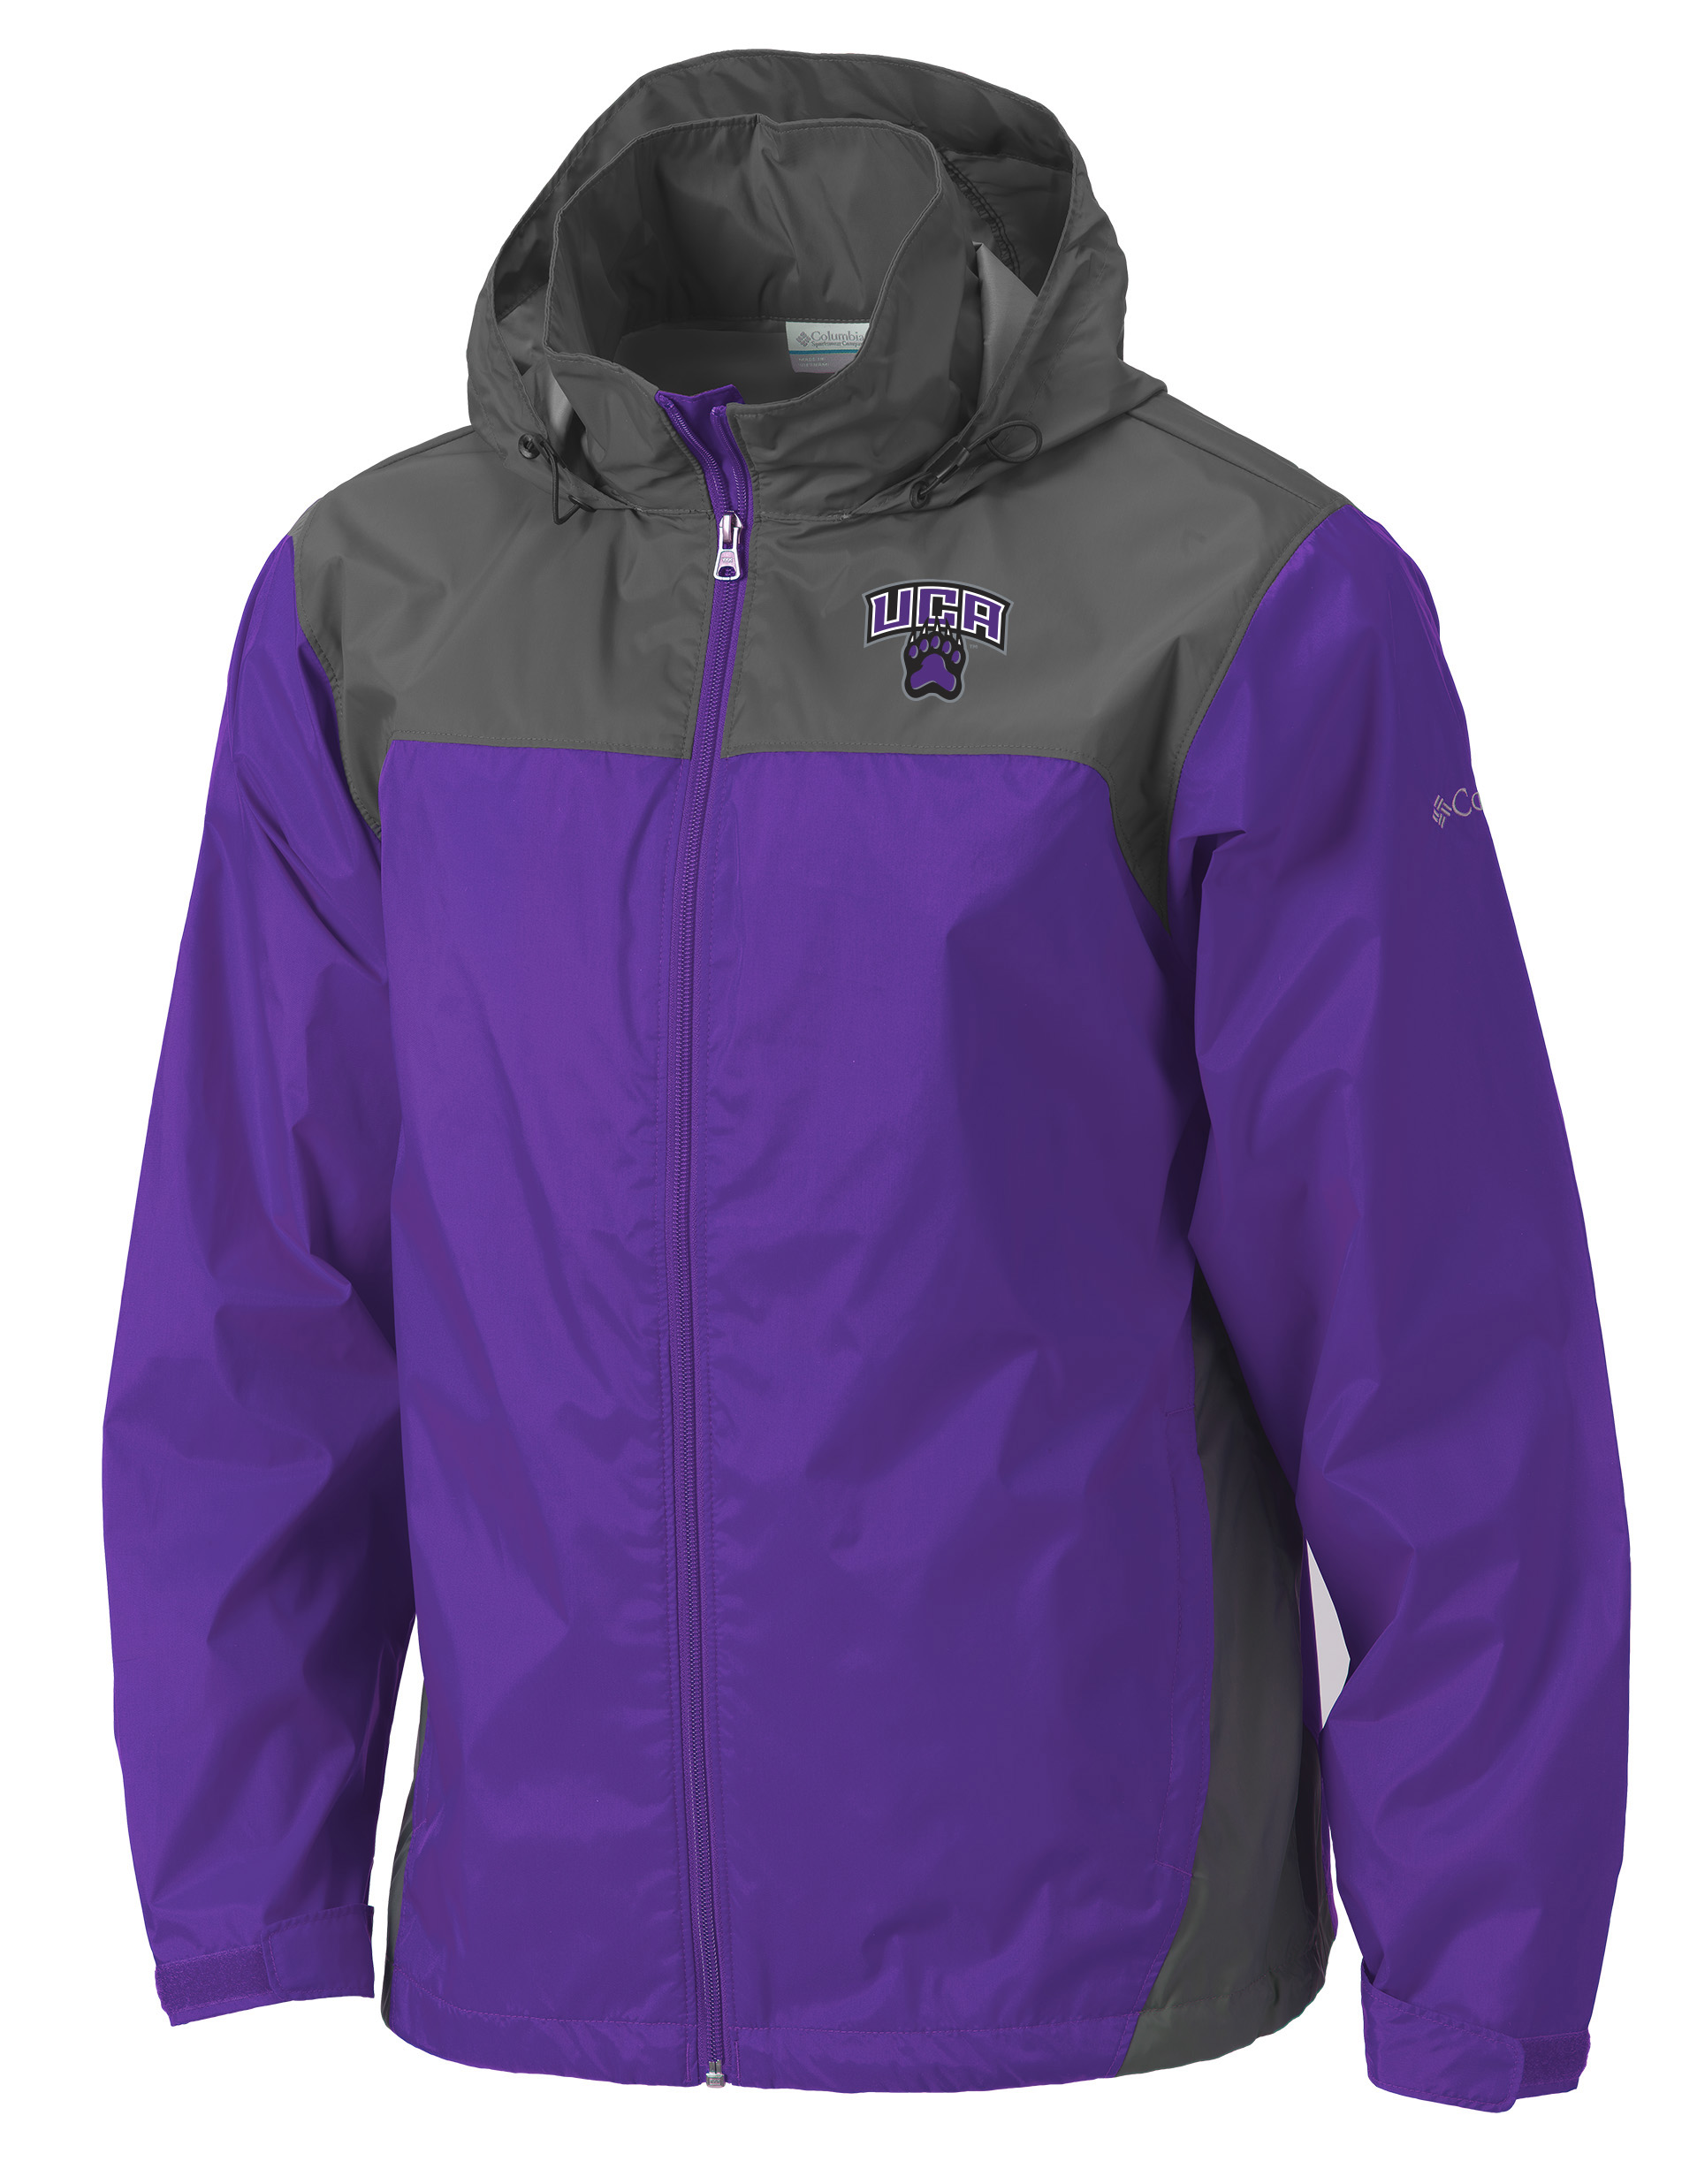 UCA Glennaker Lake Full Zip